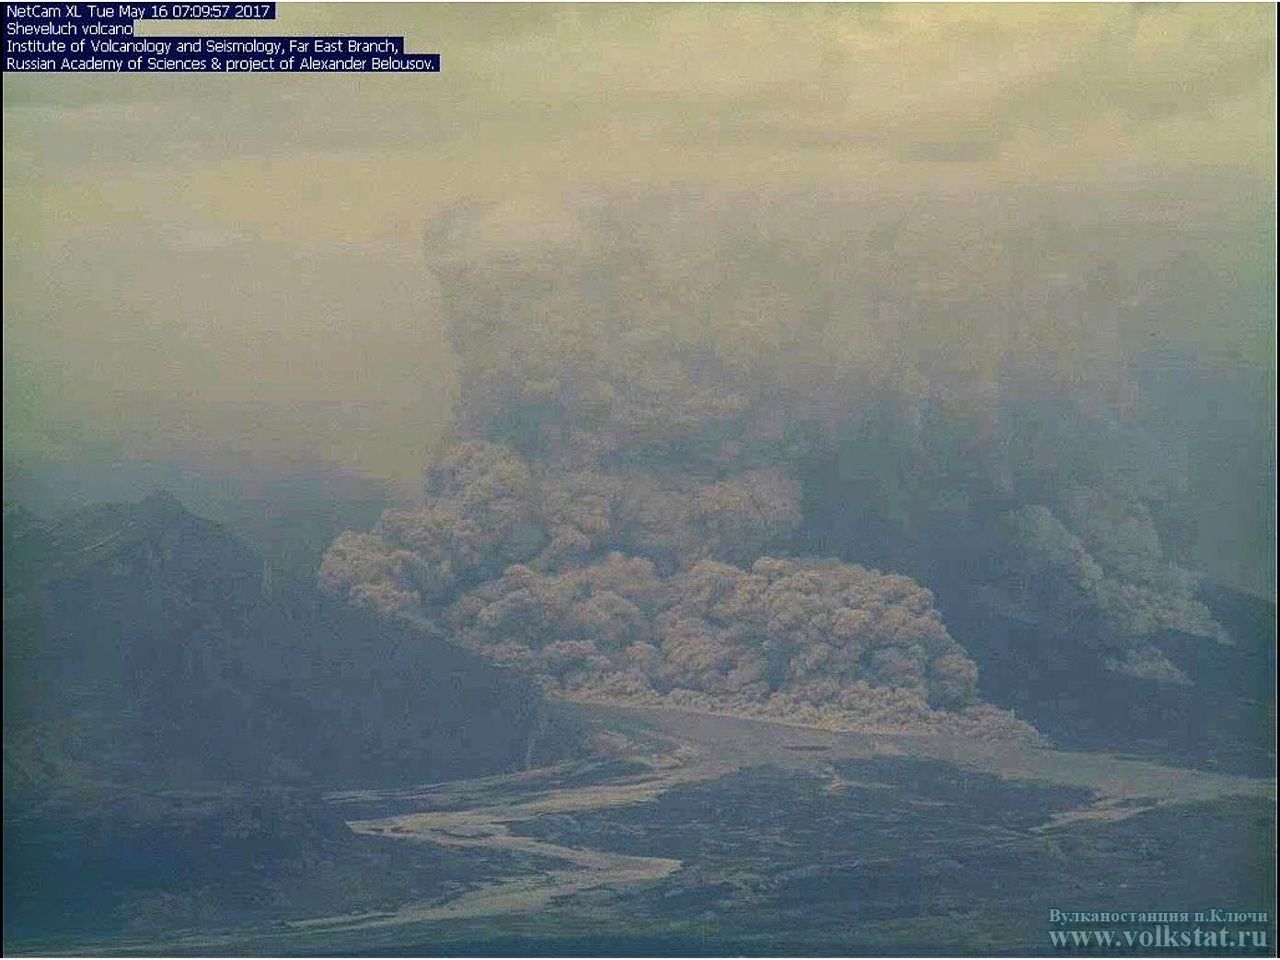 Sheveluch - pyroclastic flow from 16.05.2017 / around 7pm loc. - KVERT webcam via Volkstat